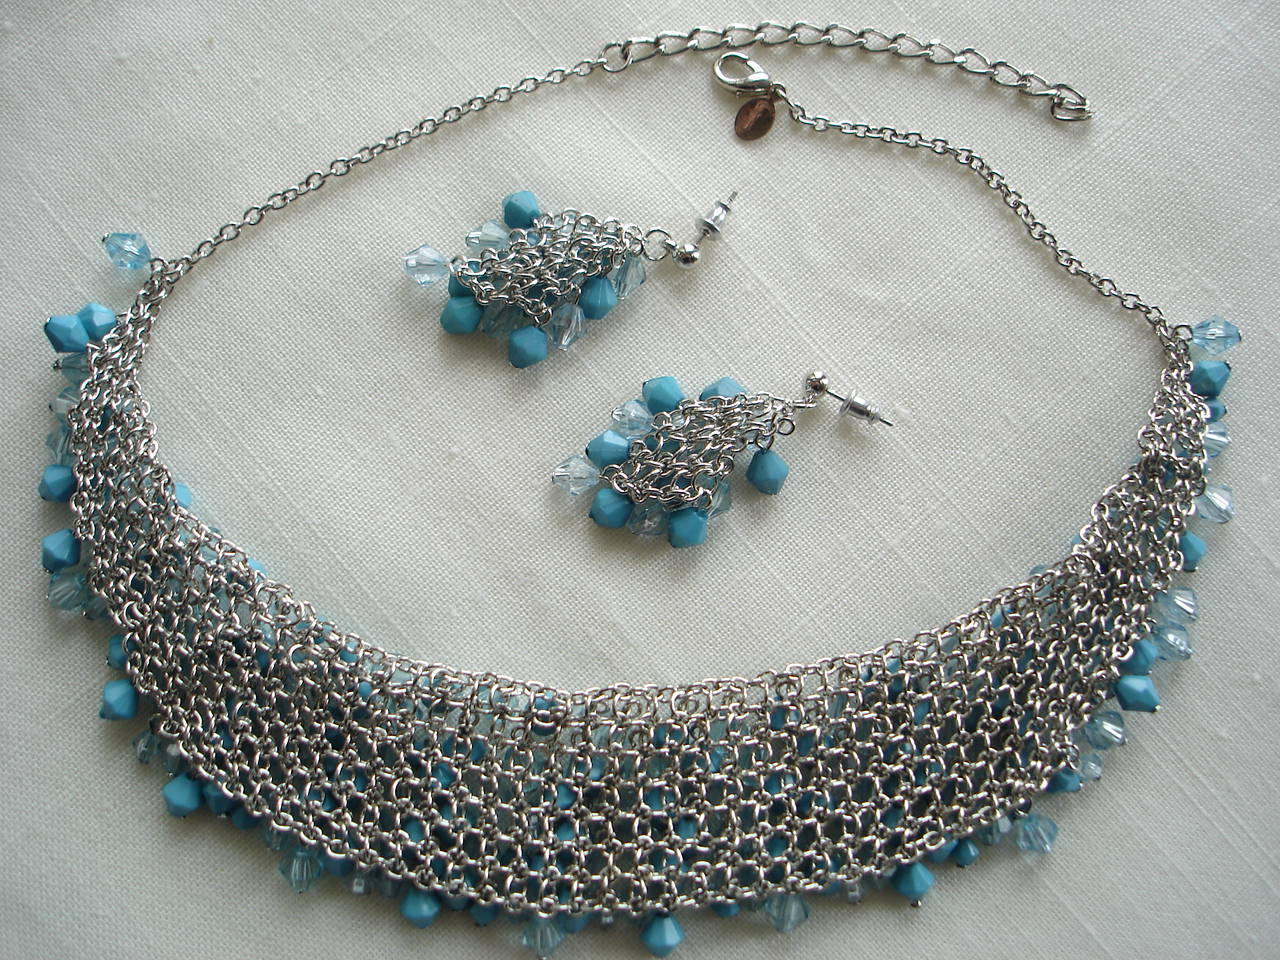 Suzanne Somers Necklace Earrings Sterling Simulated Turquoise Blue Crystals